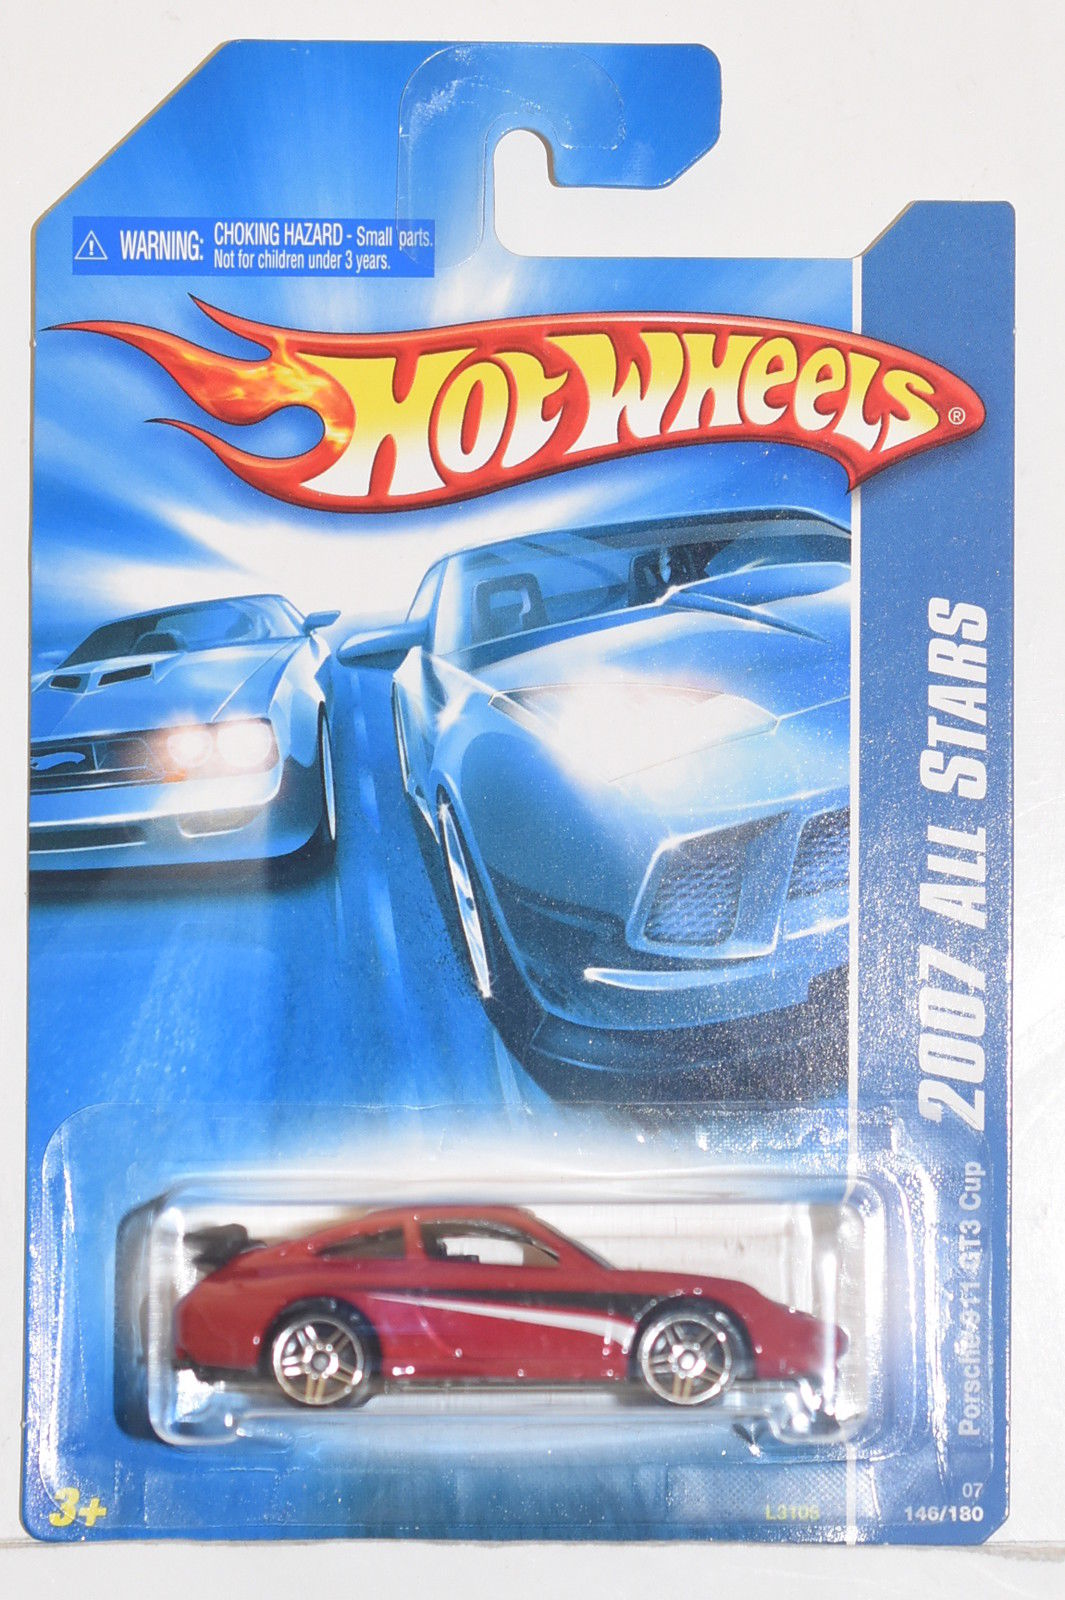 HOT WHEELS 2007 ALL STARS PORSCHE 911 GT3 CUP